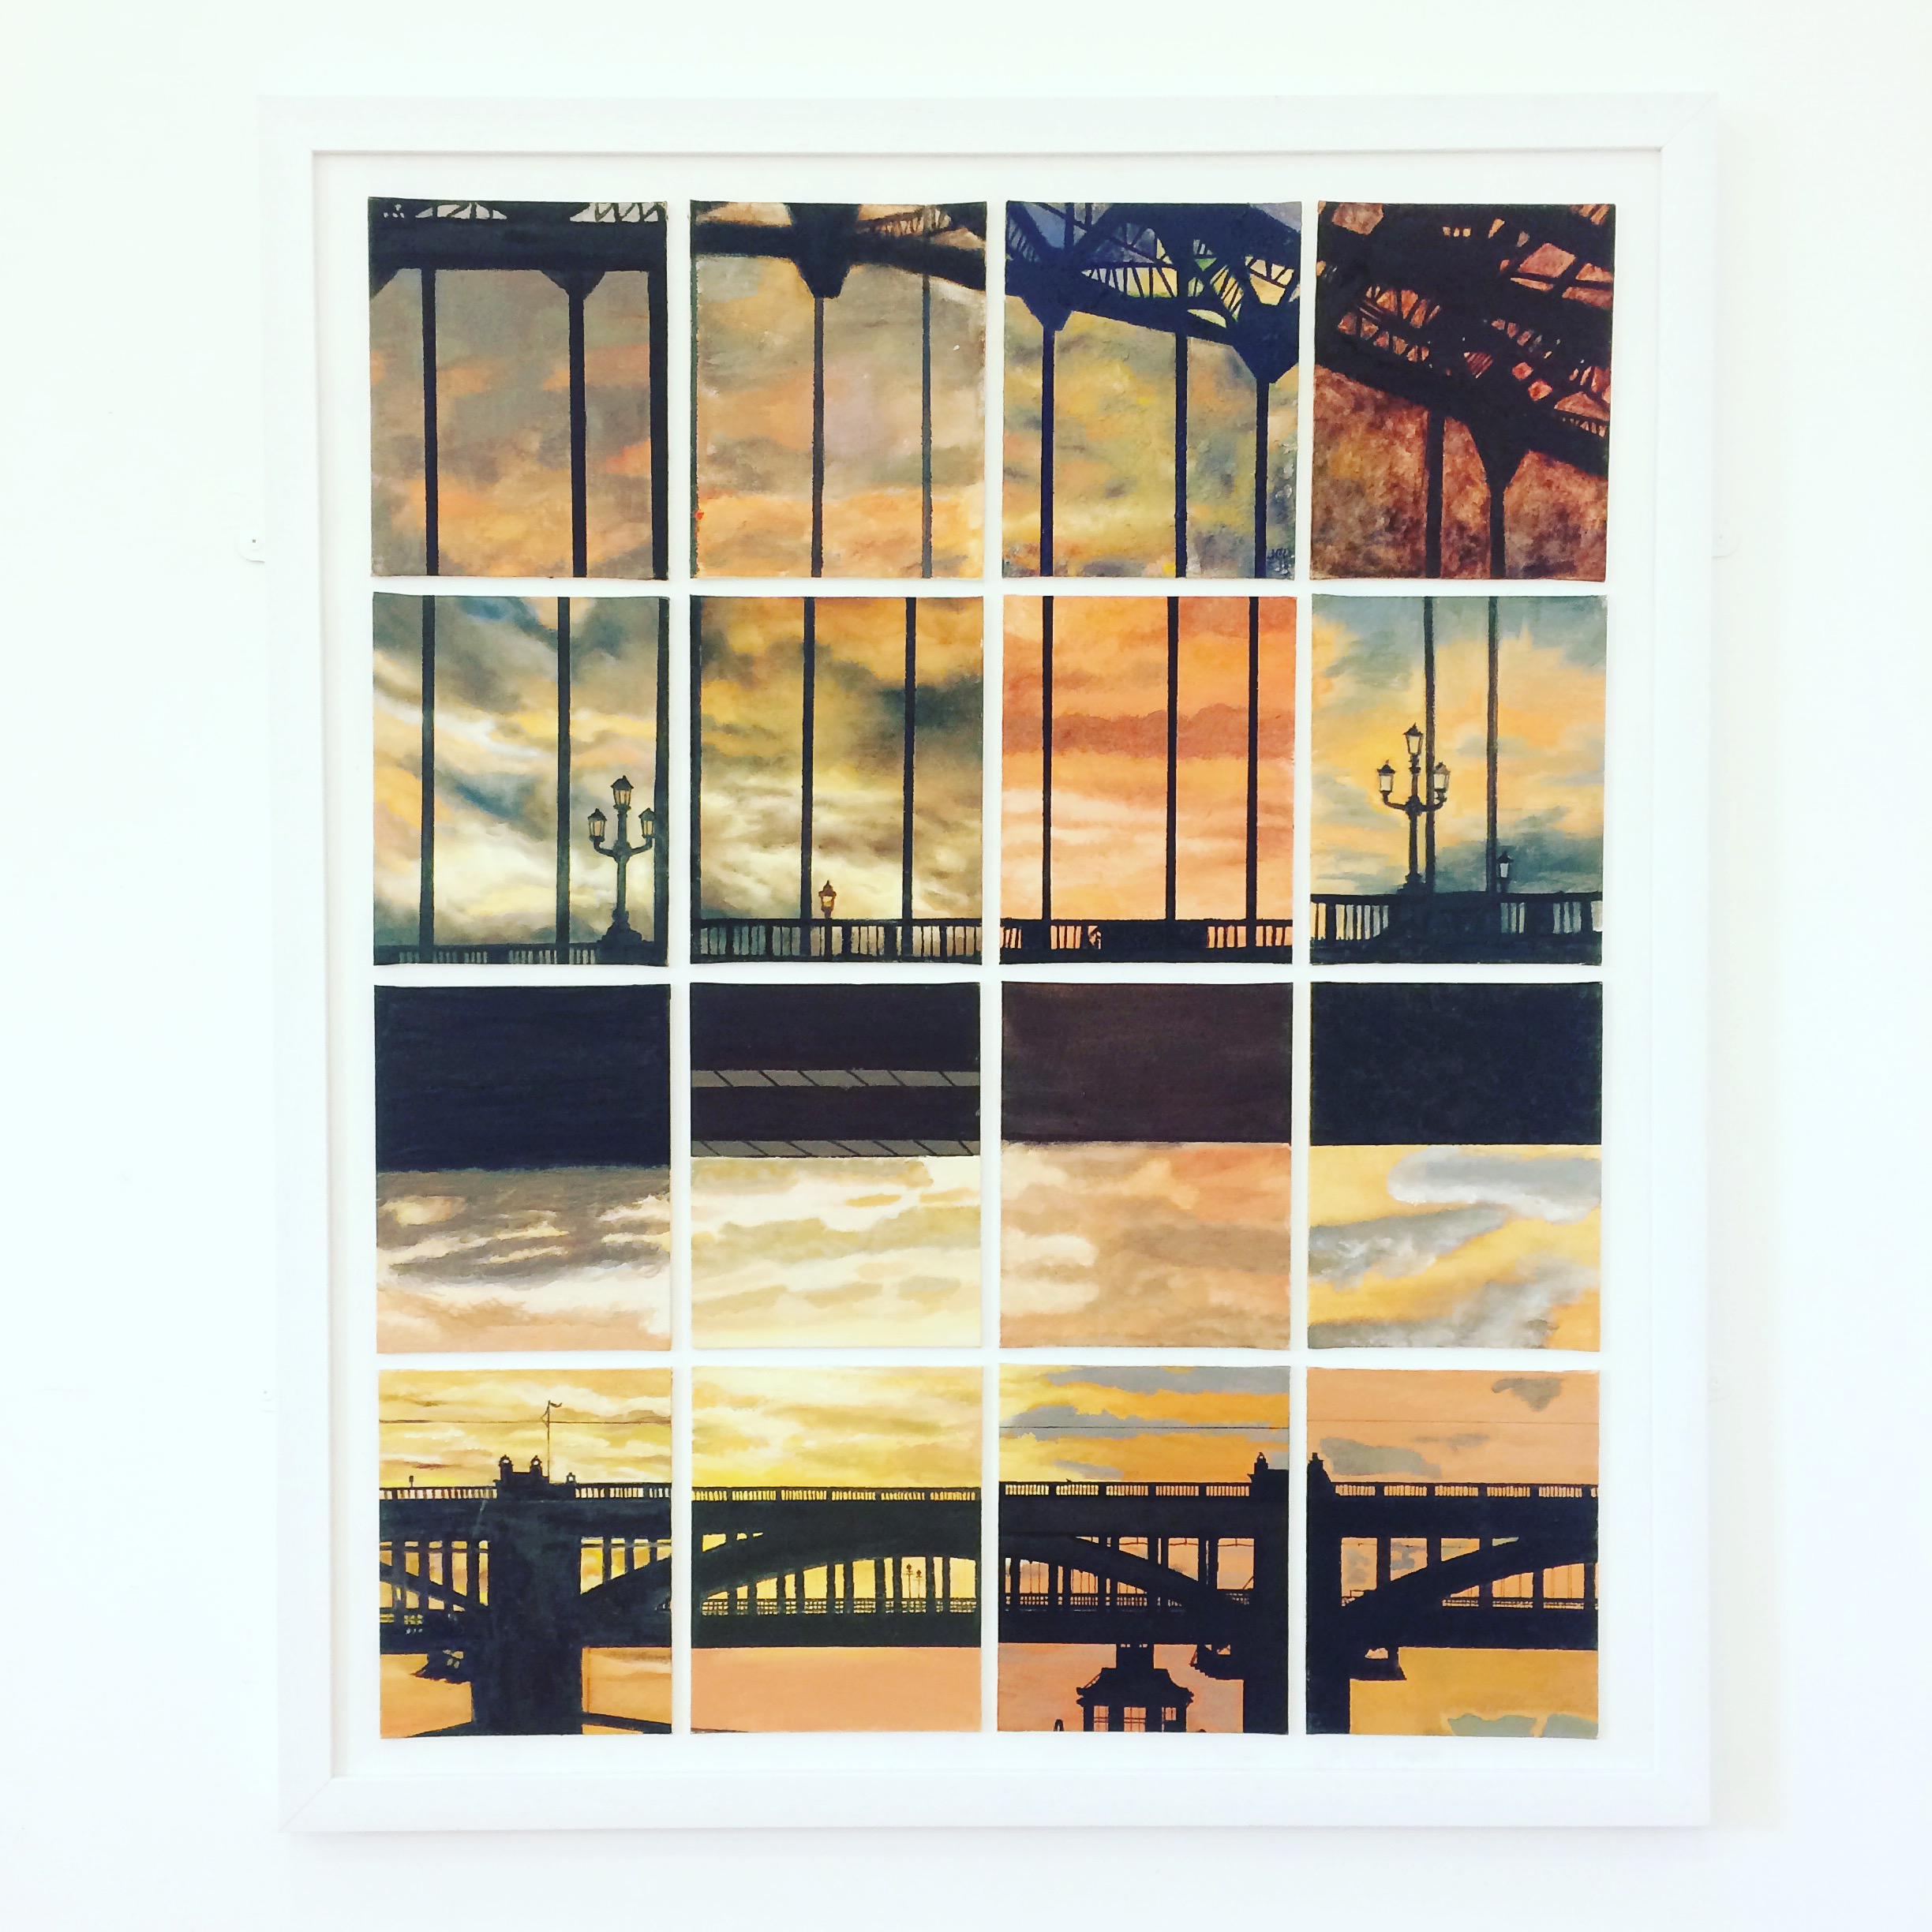 Sunset over the Tyne | Highest bid to date at £200